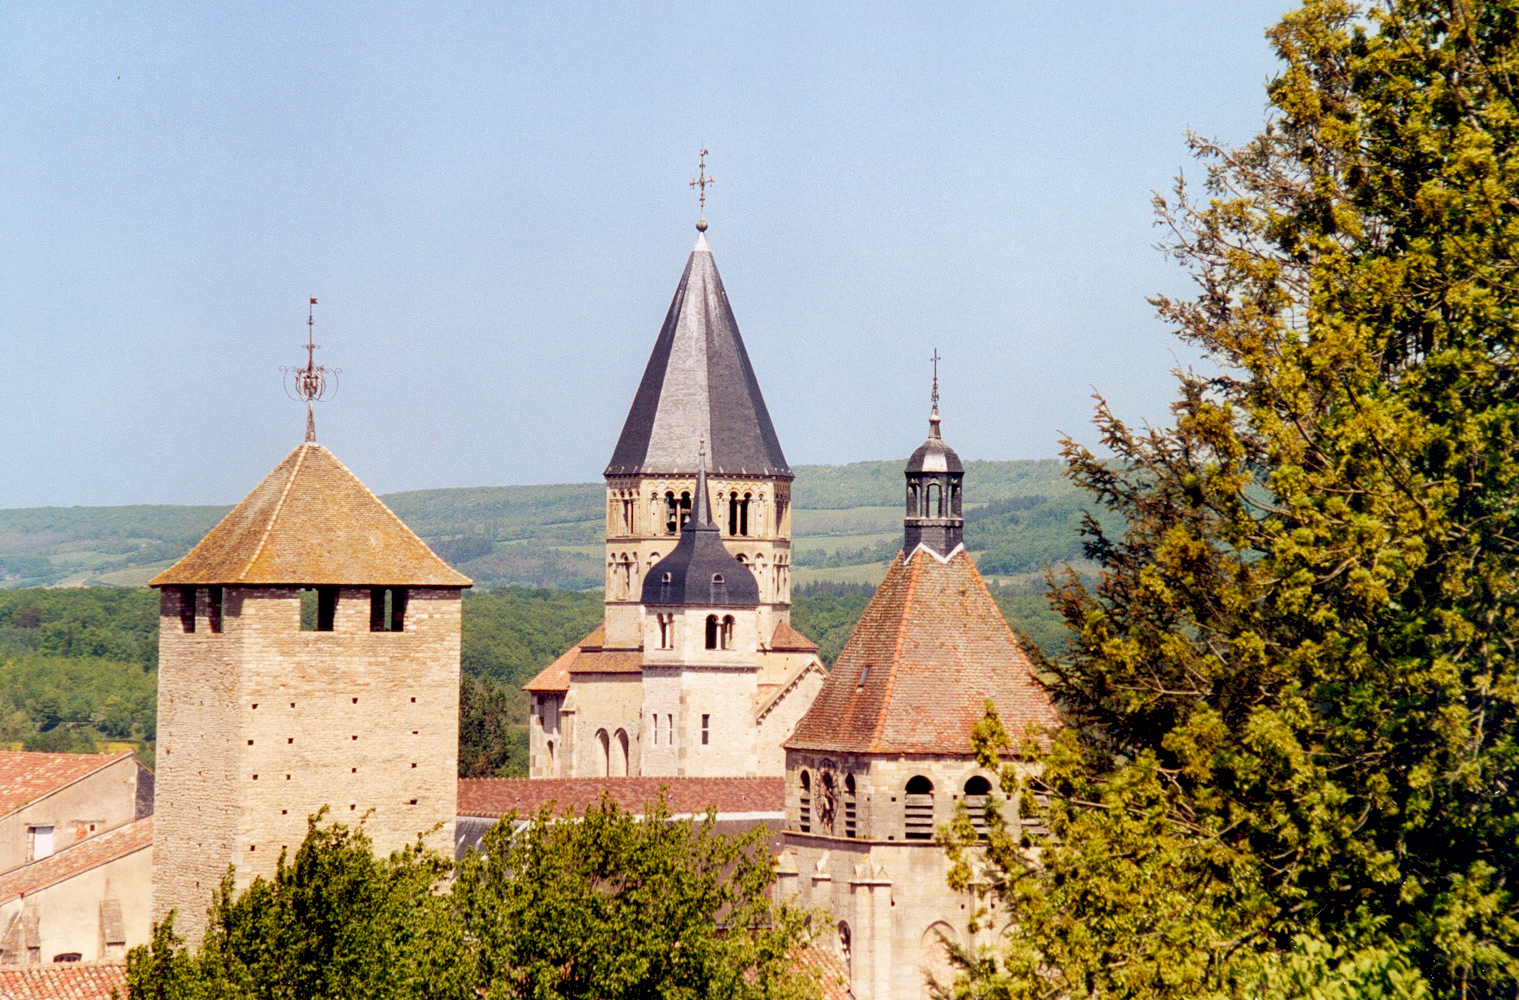 The towers of Cluny - licence [CC BY-SA 1.0] from Wikimedia Commons